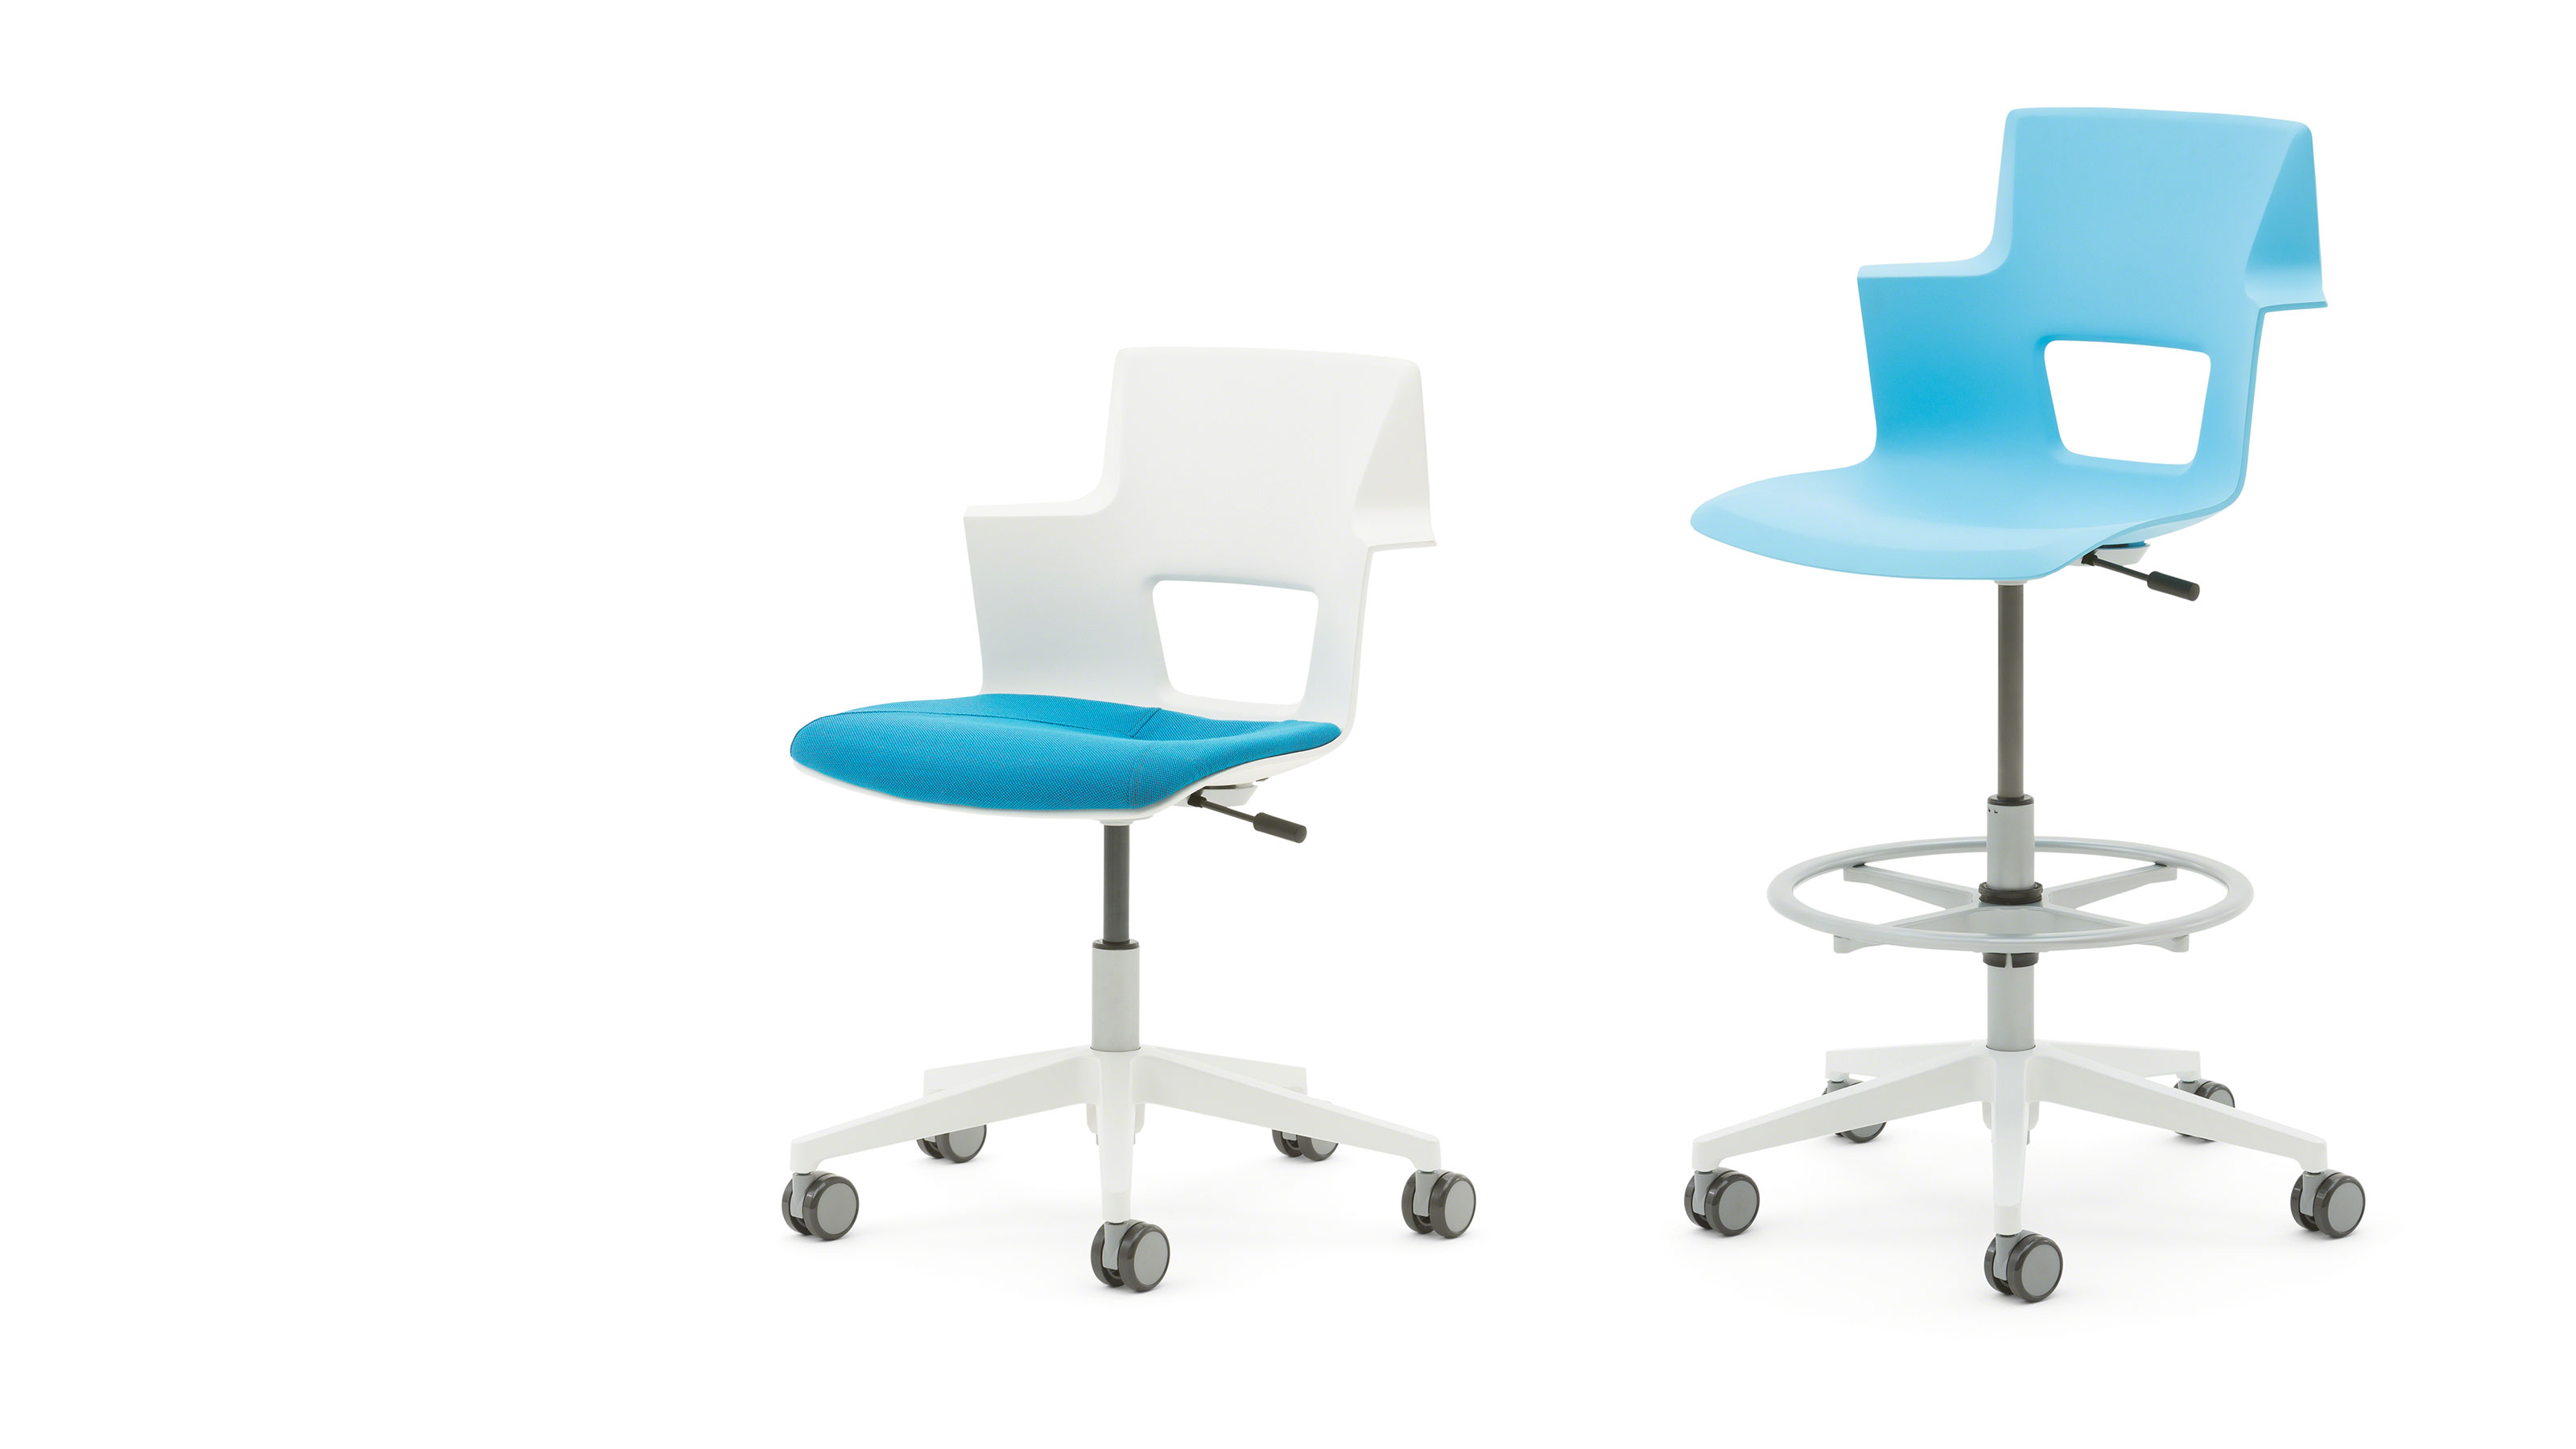 Steelcase Shortcut Chair Pictures To Pin On Pinterest